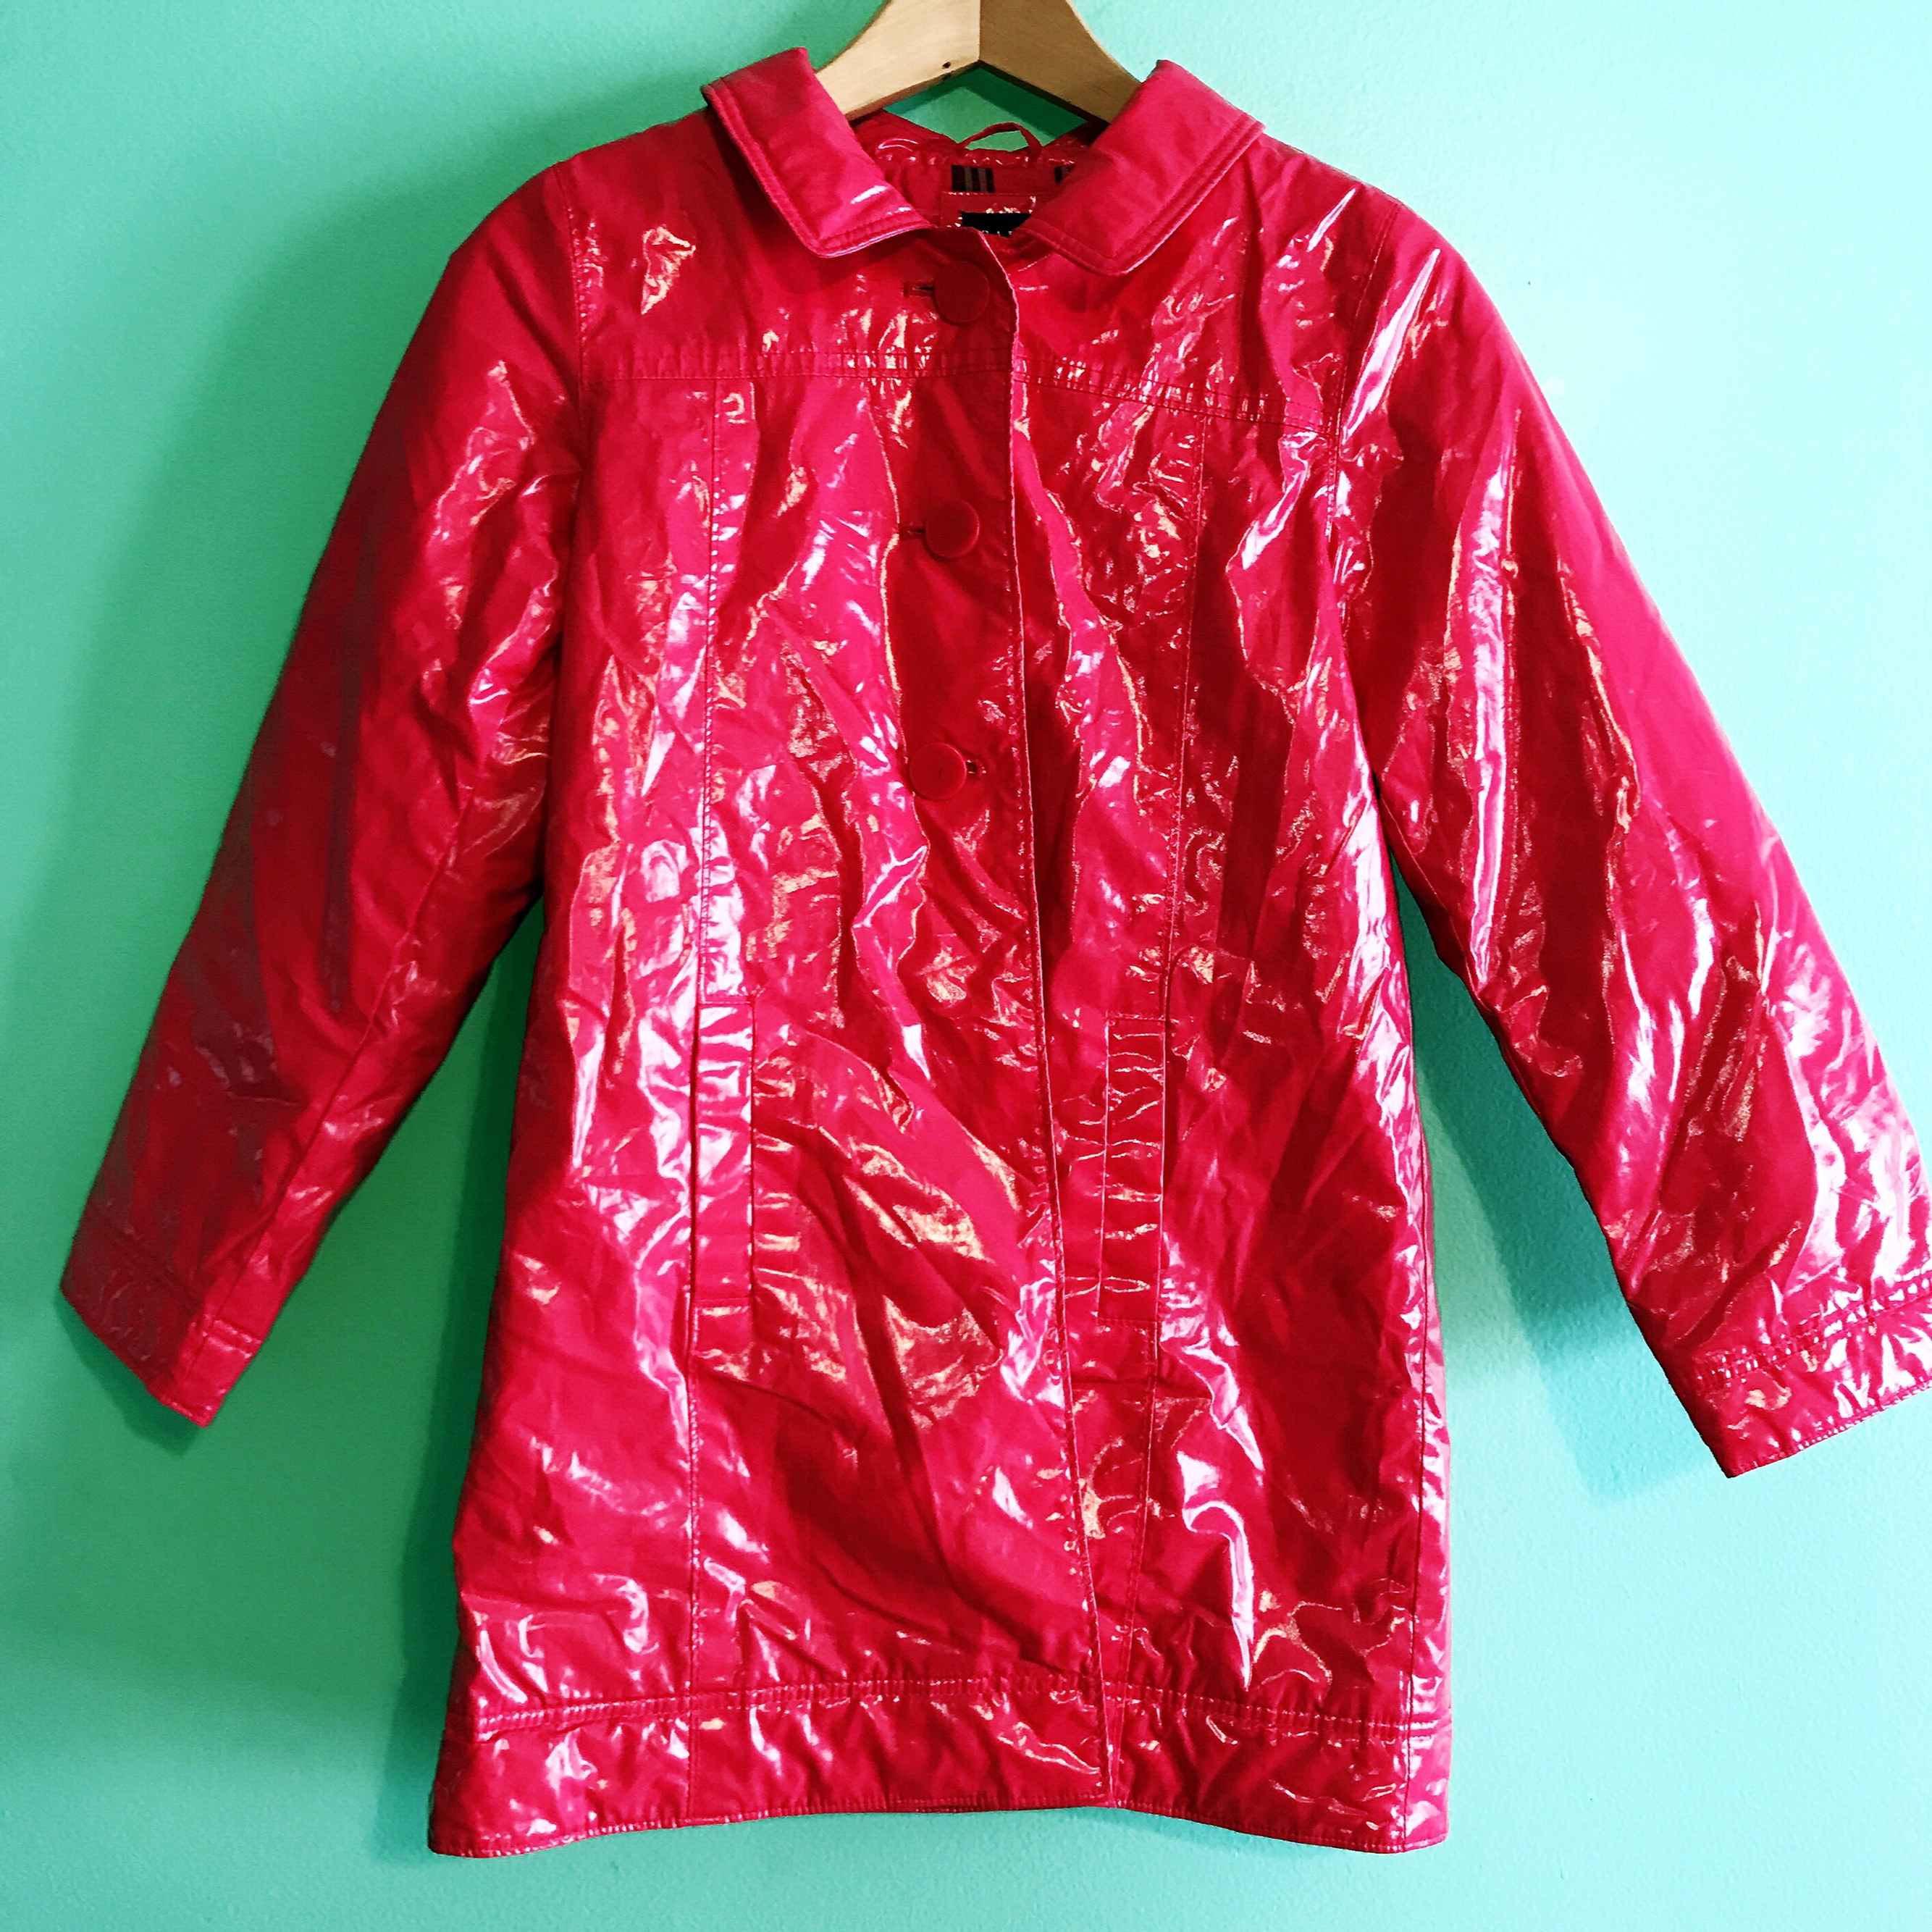 Early 2000s vintage unif candy coat style red long    - Depop